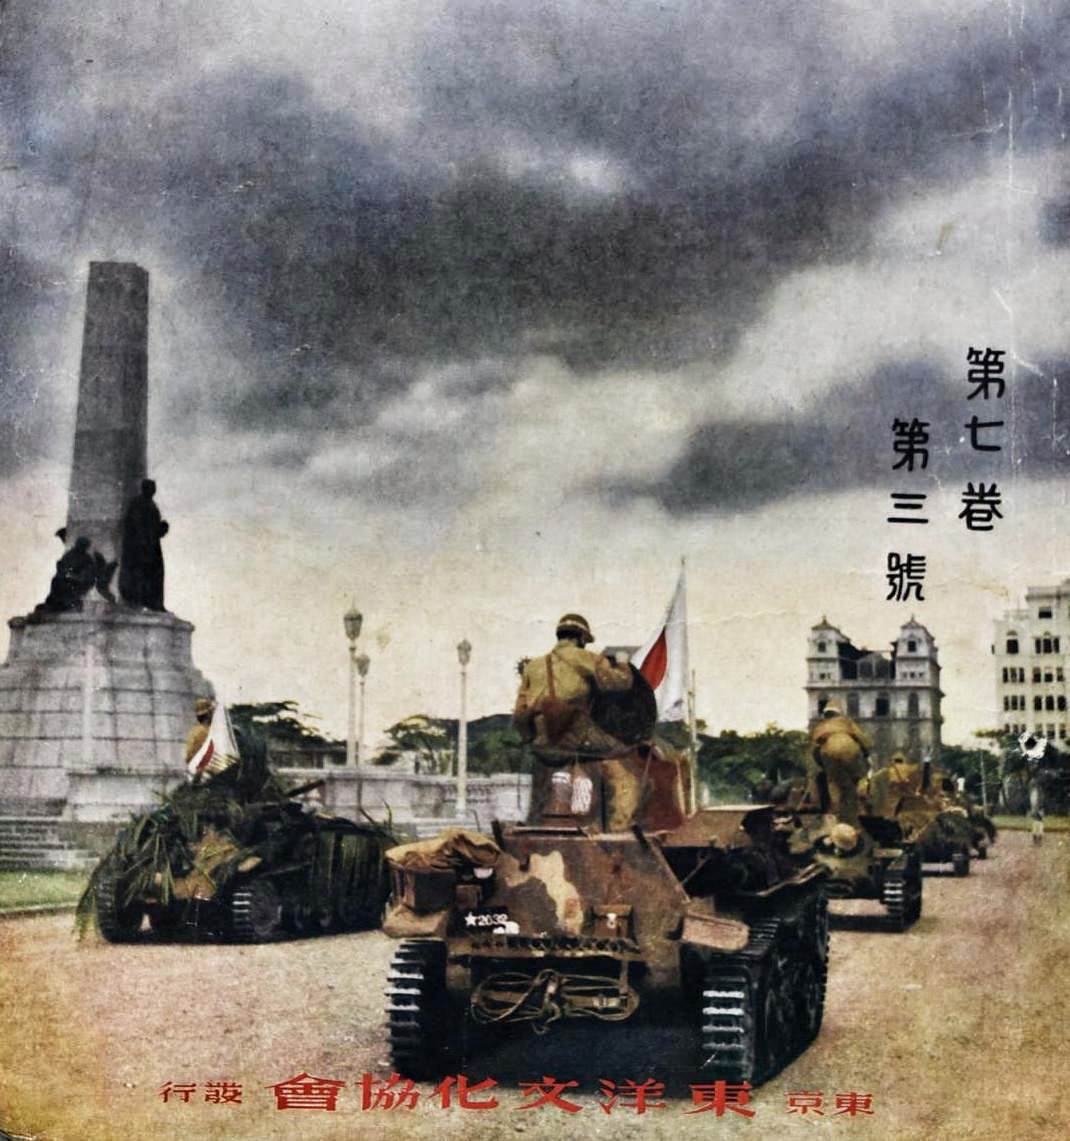 Japanese Army tankettes in Manila, Philippines, on May 11, 1942.